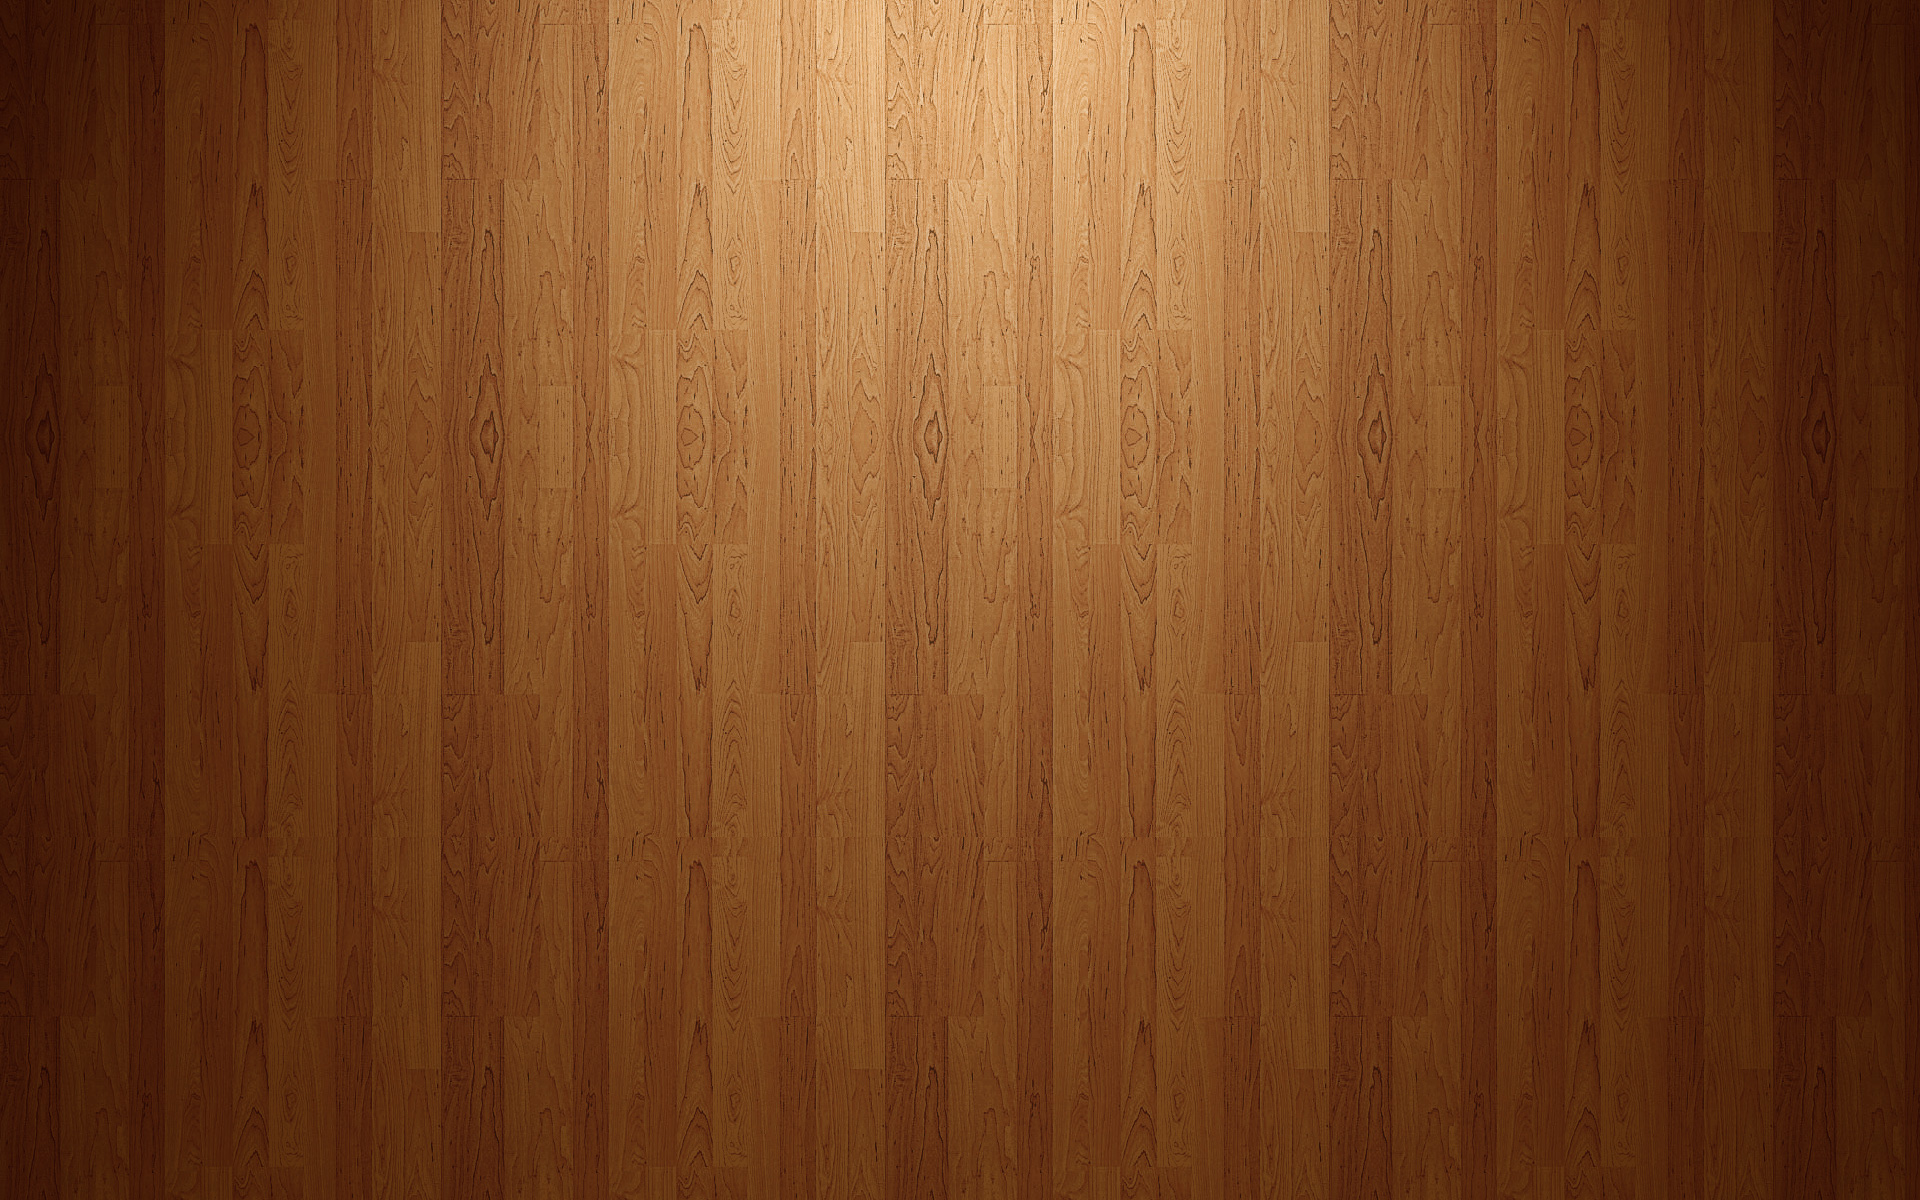 hardwood floor wallpaper 177437